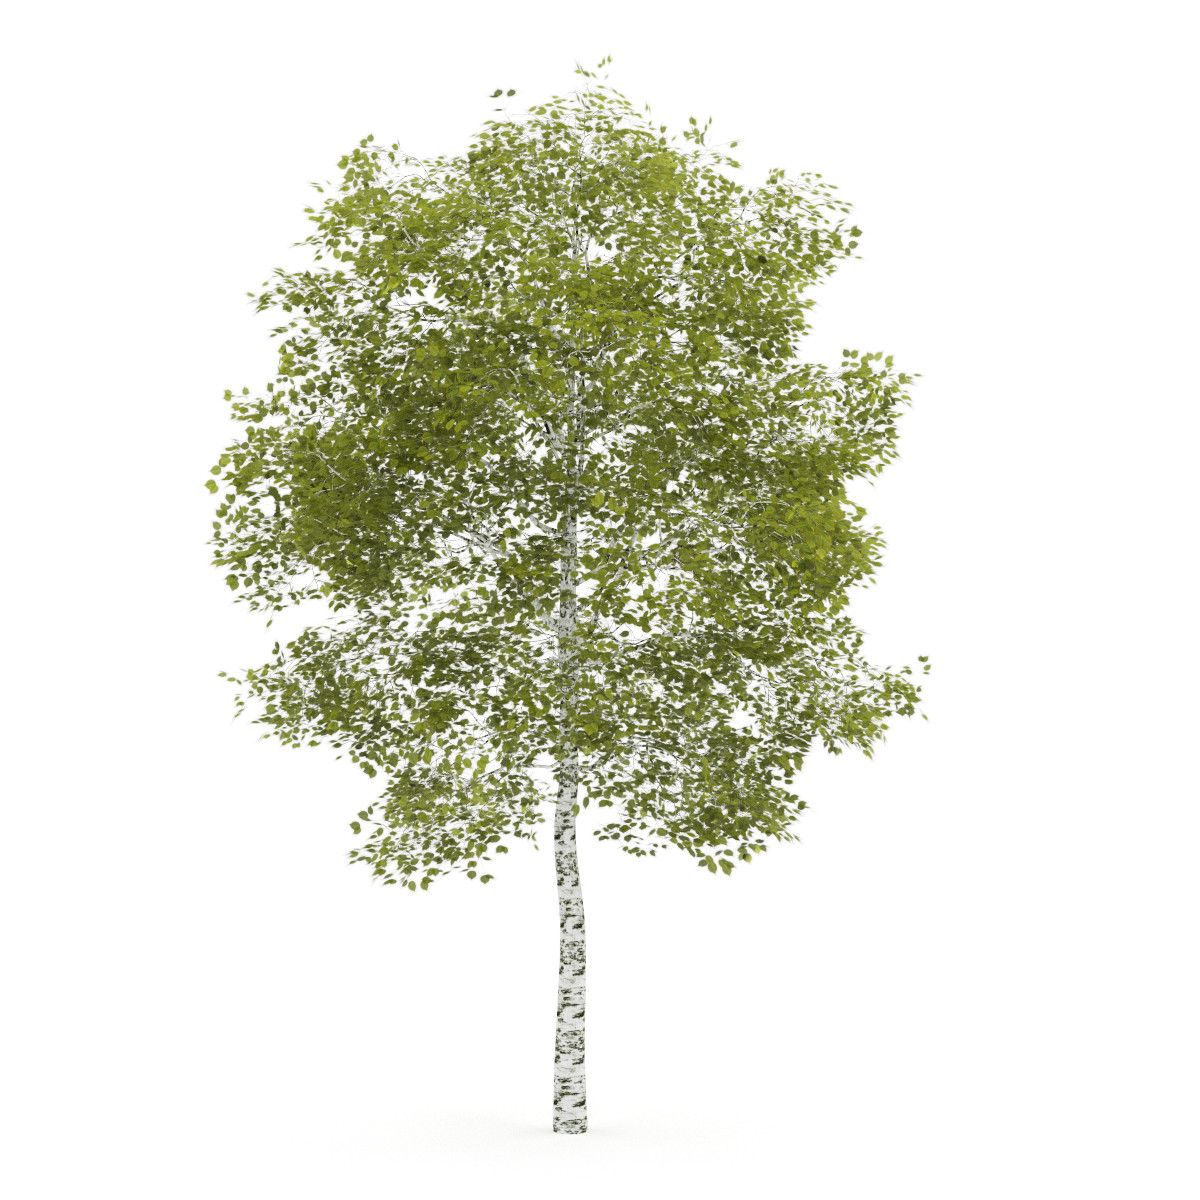 Birch Trees For Photoshop Free  Google Search Textures